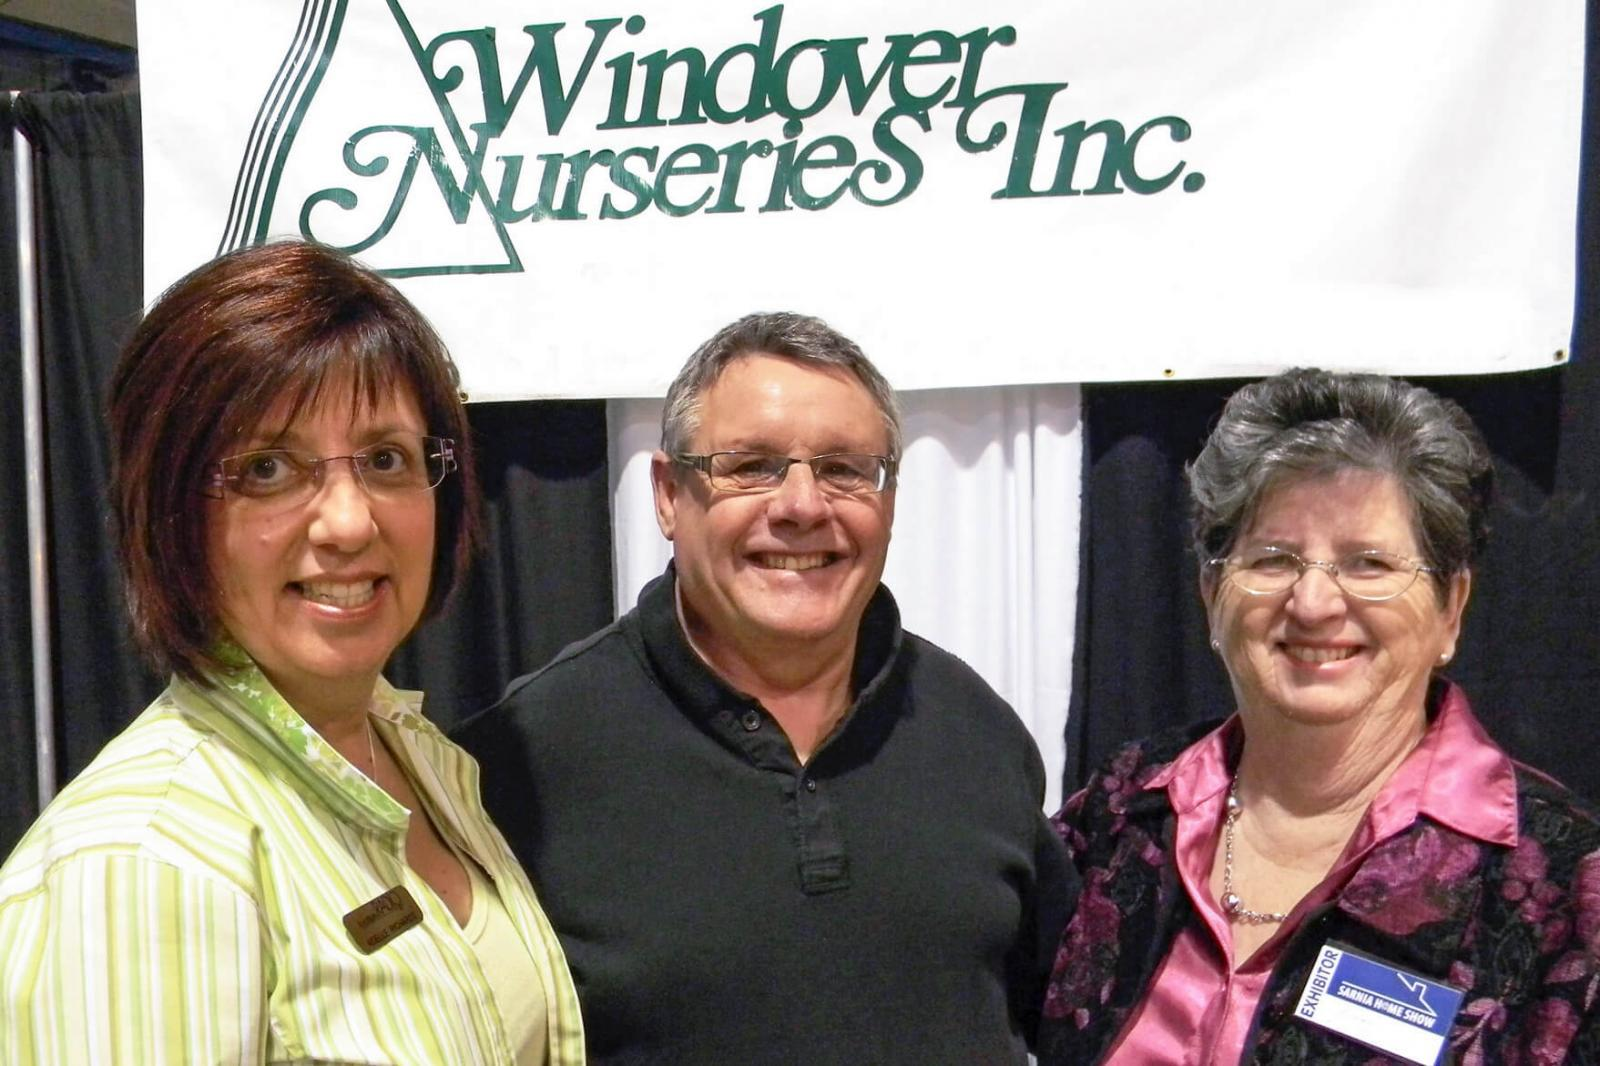 Adele Richards, left, and Jean Windover join Denis Flanagan at the Sarnia Home Show.